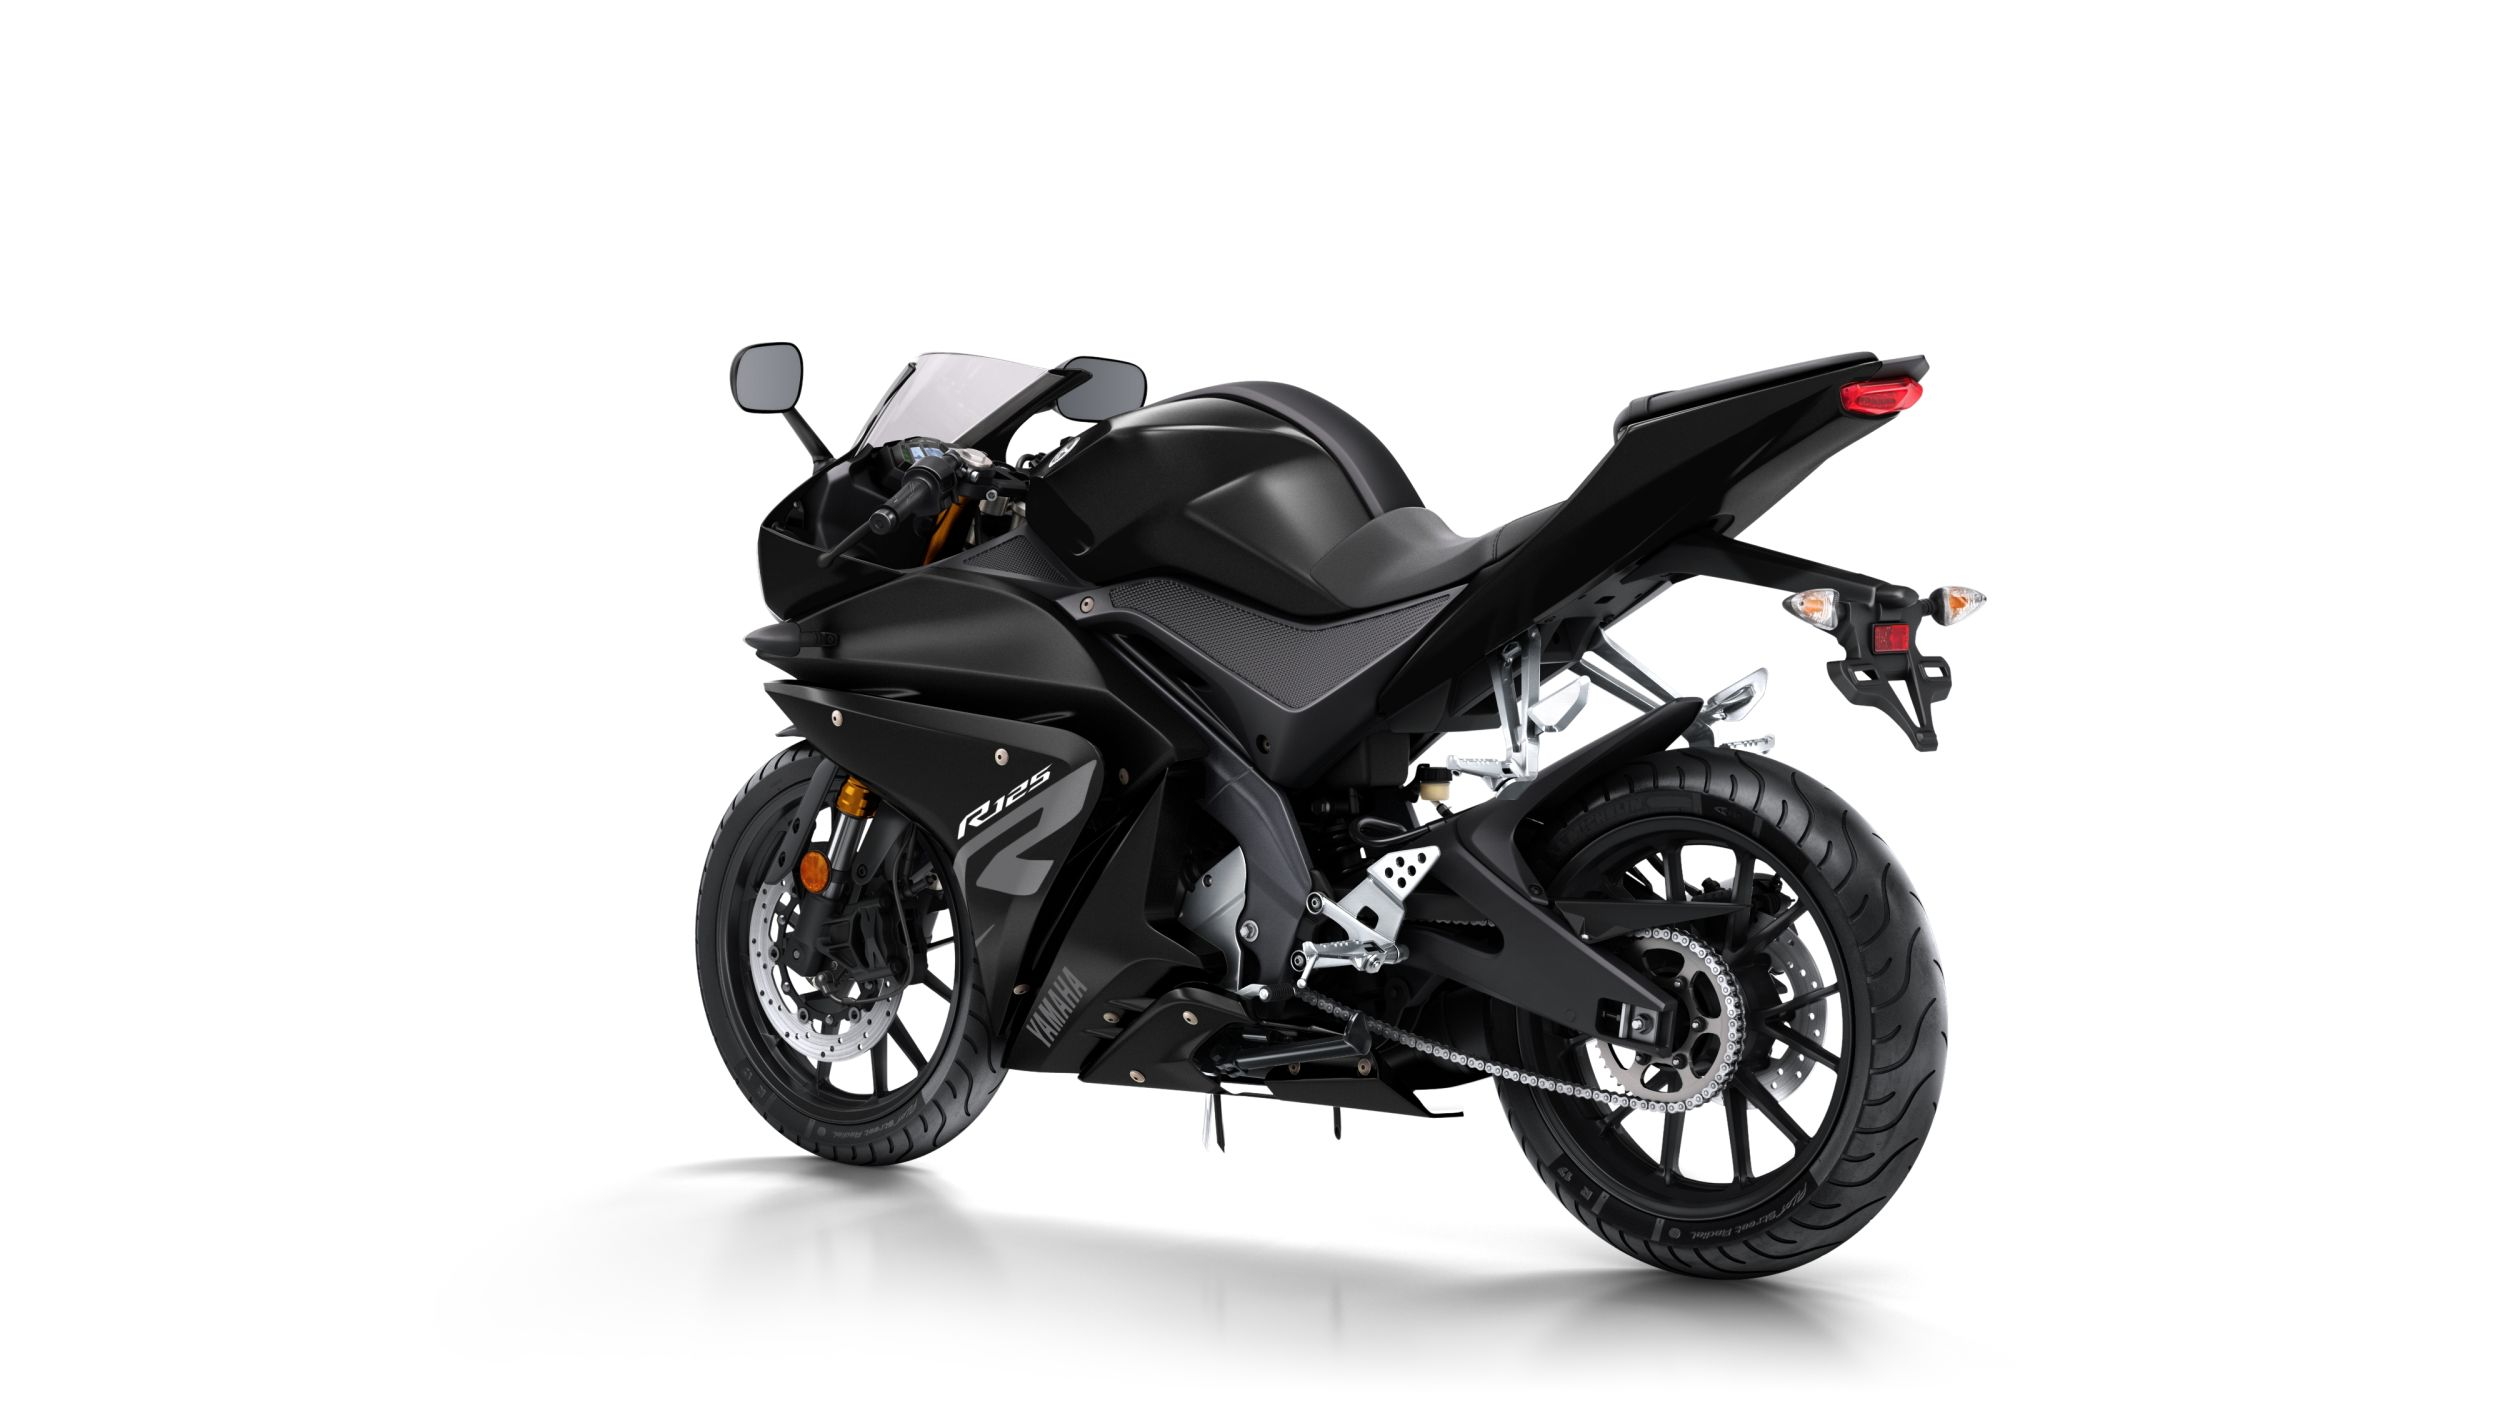 gebrauchte yamaha yzf r125 motorr der kaufen. Black Bedroom Furniture Sets. Home Design Ideas